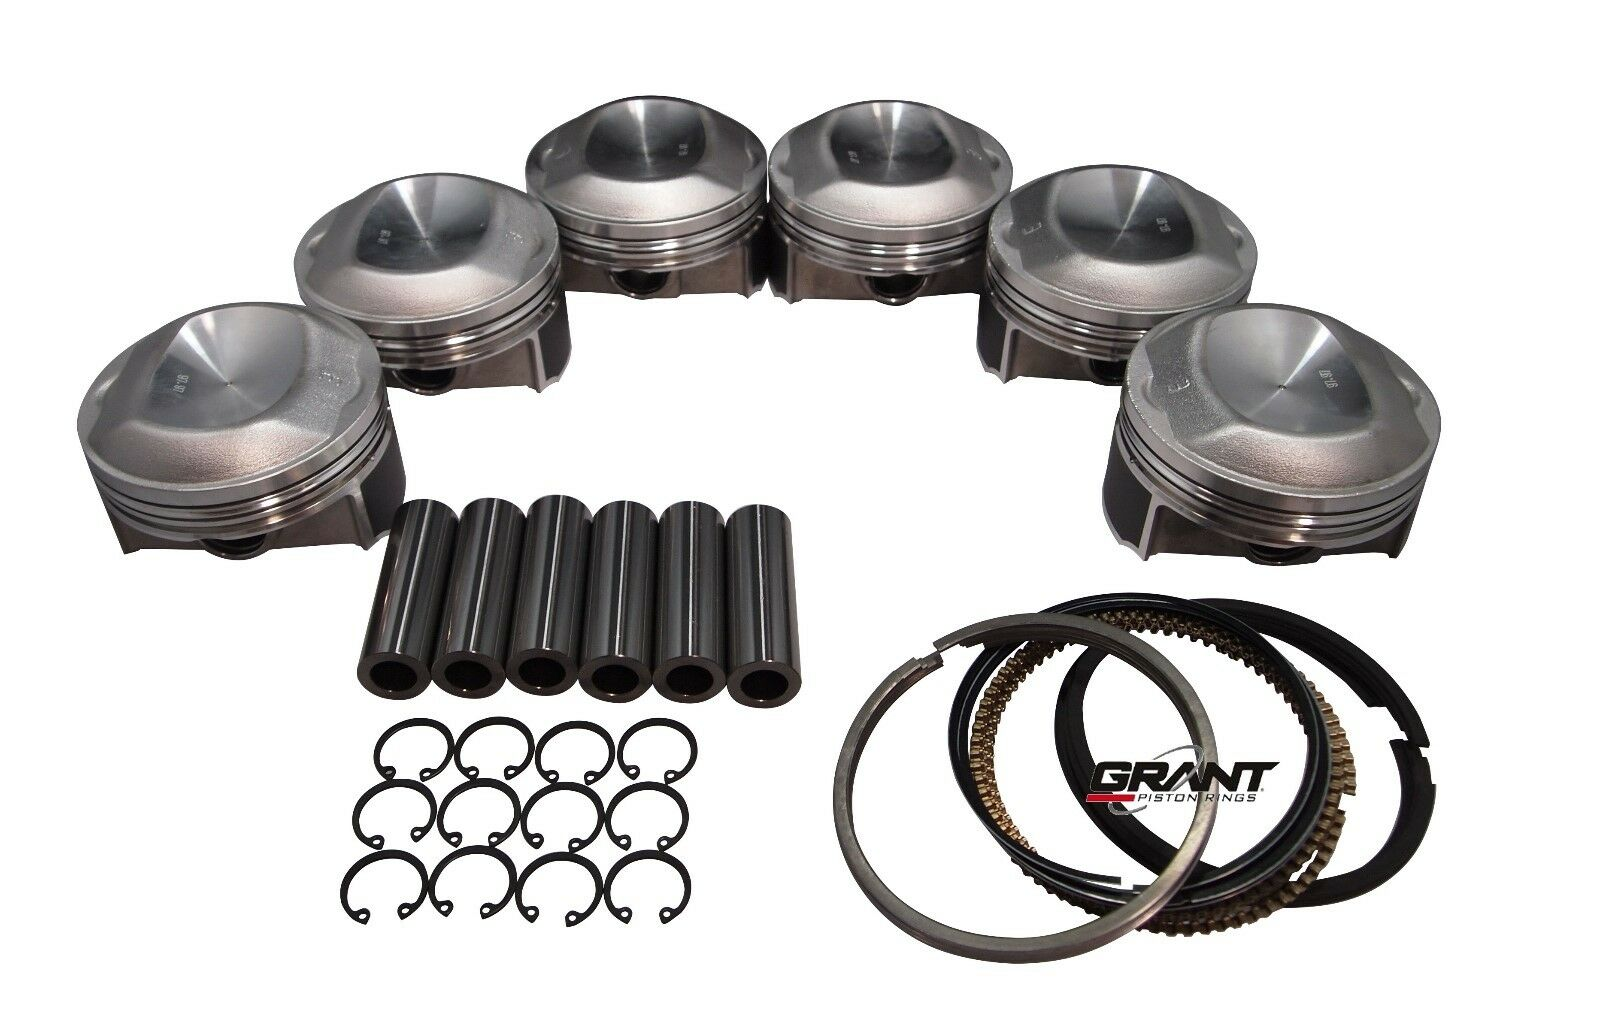 Qsc Porsche 911 95mm Pistons Set Cr 9 5 With Grant Piston